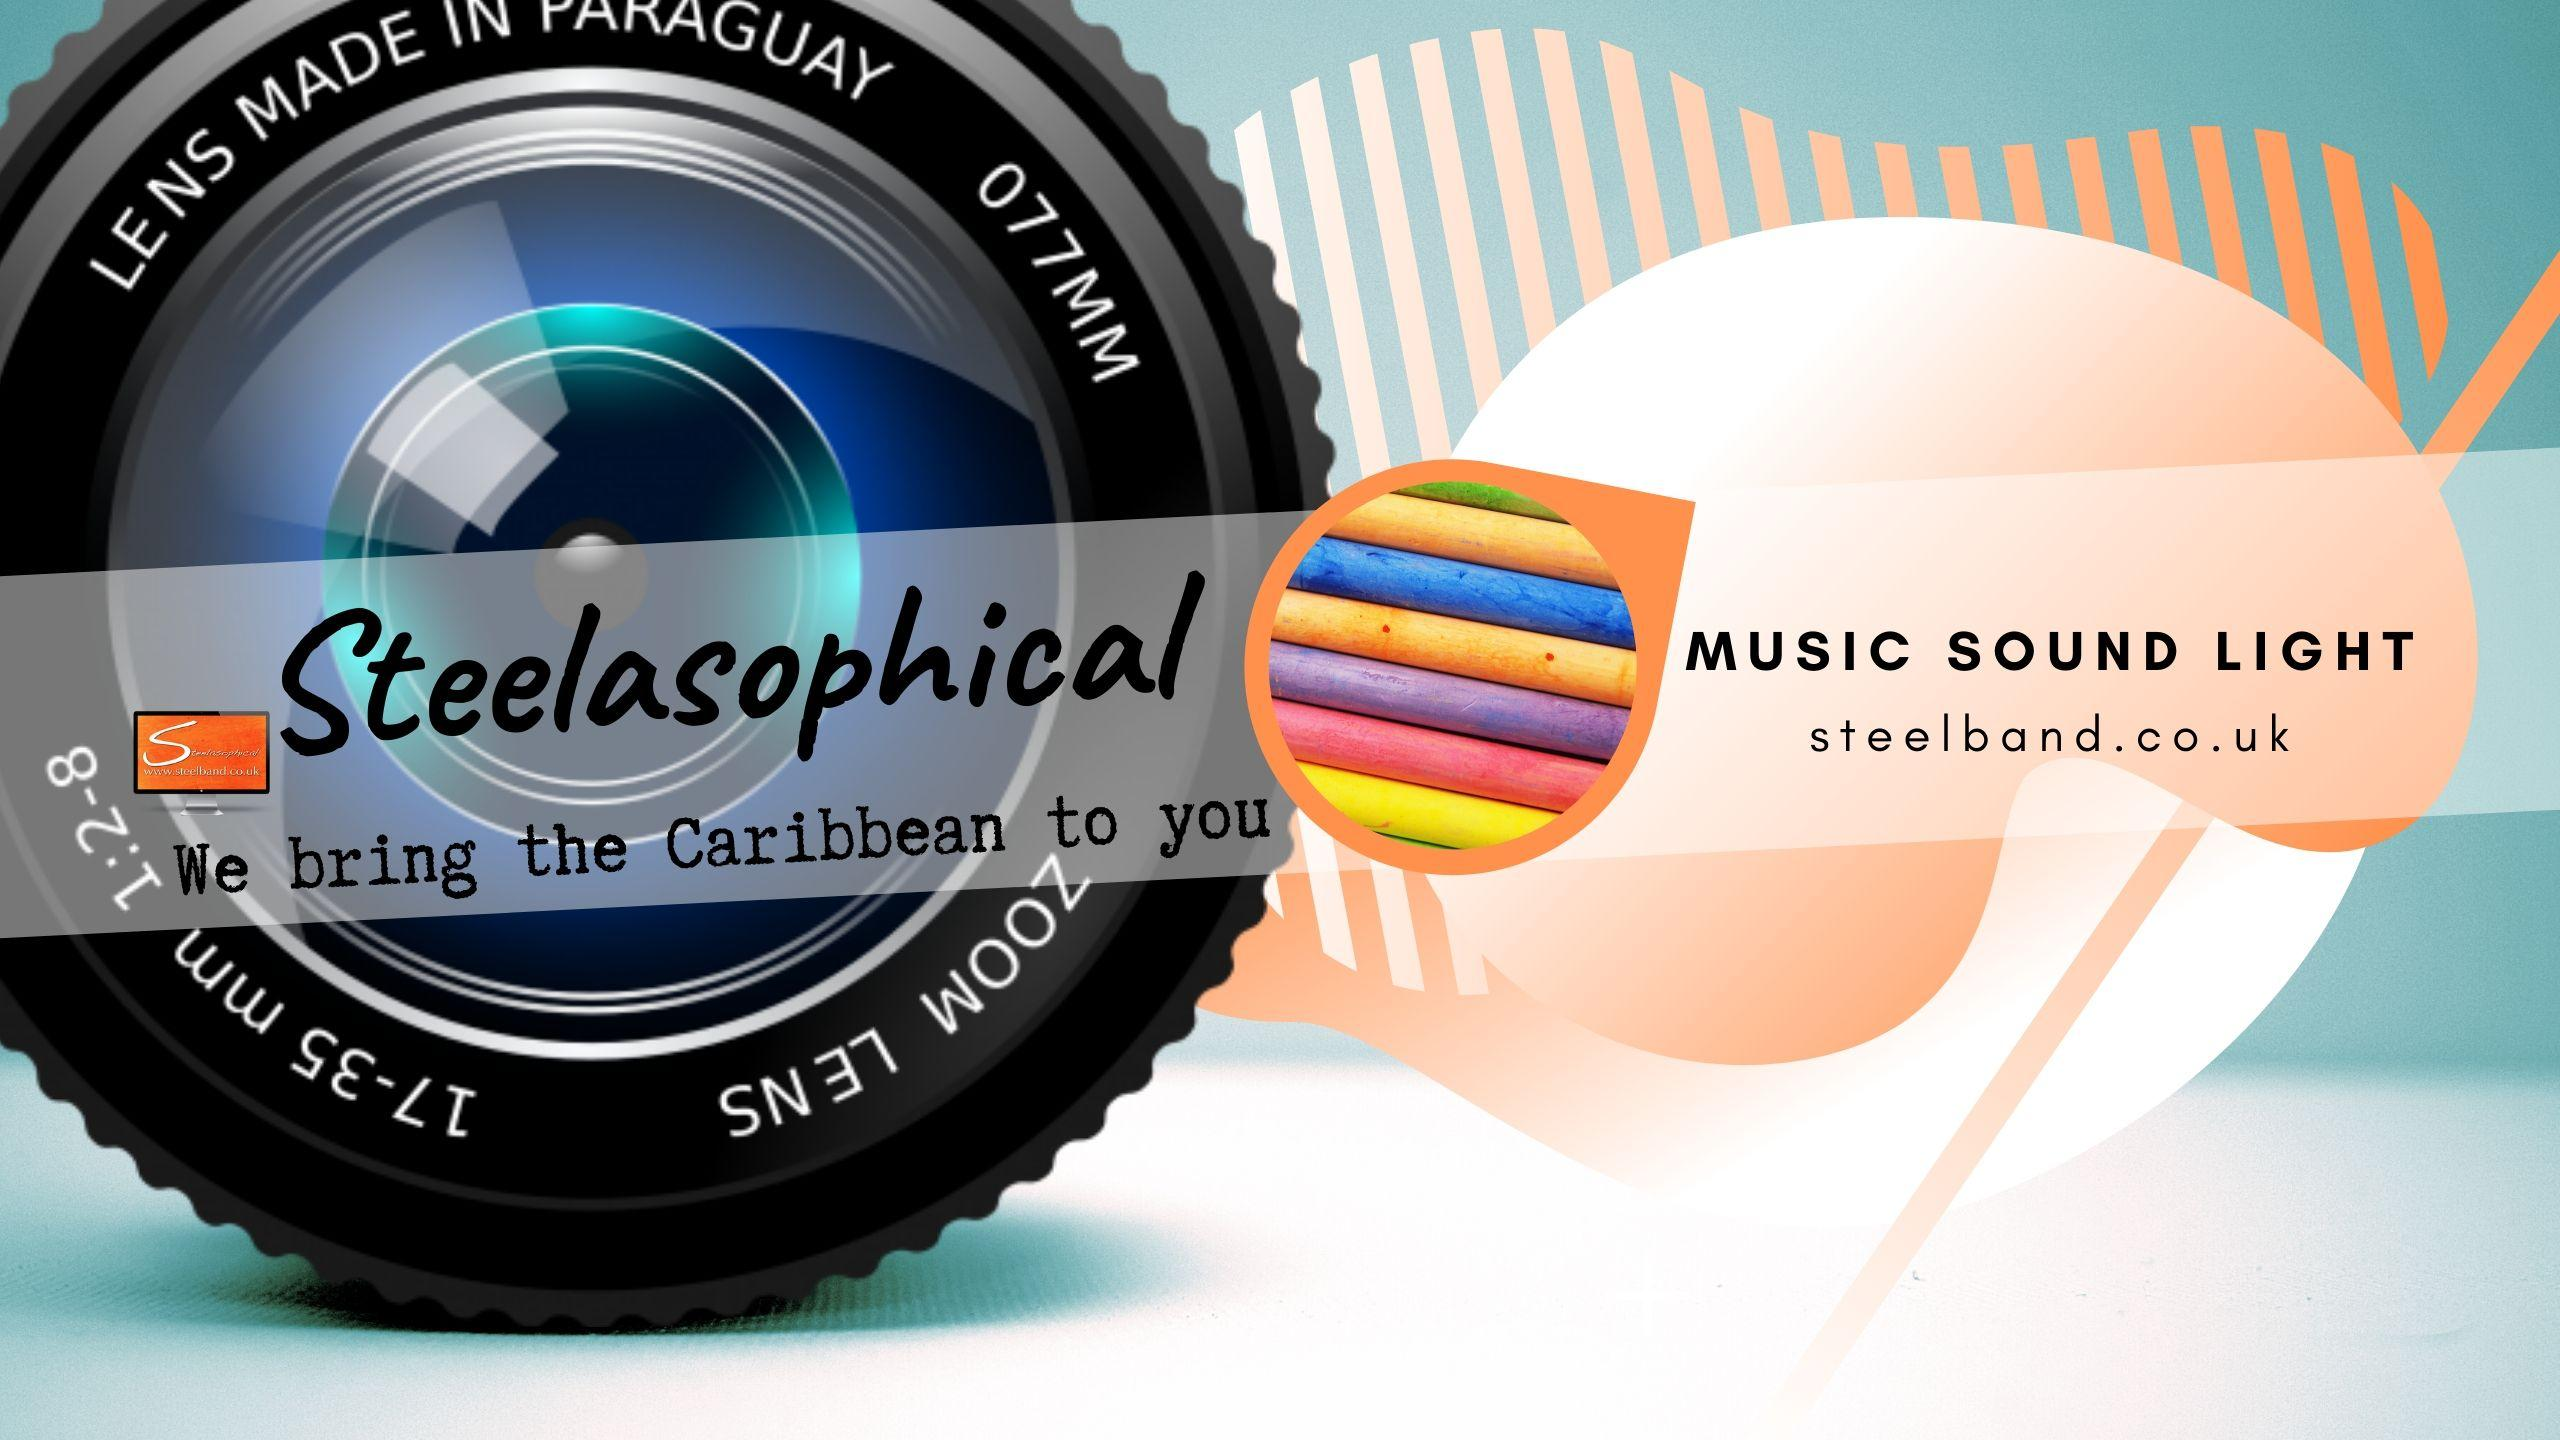 Steelasophical SteelBand for Hire UK steelpans Steeldrums Caribbean Music wyyywy